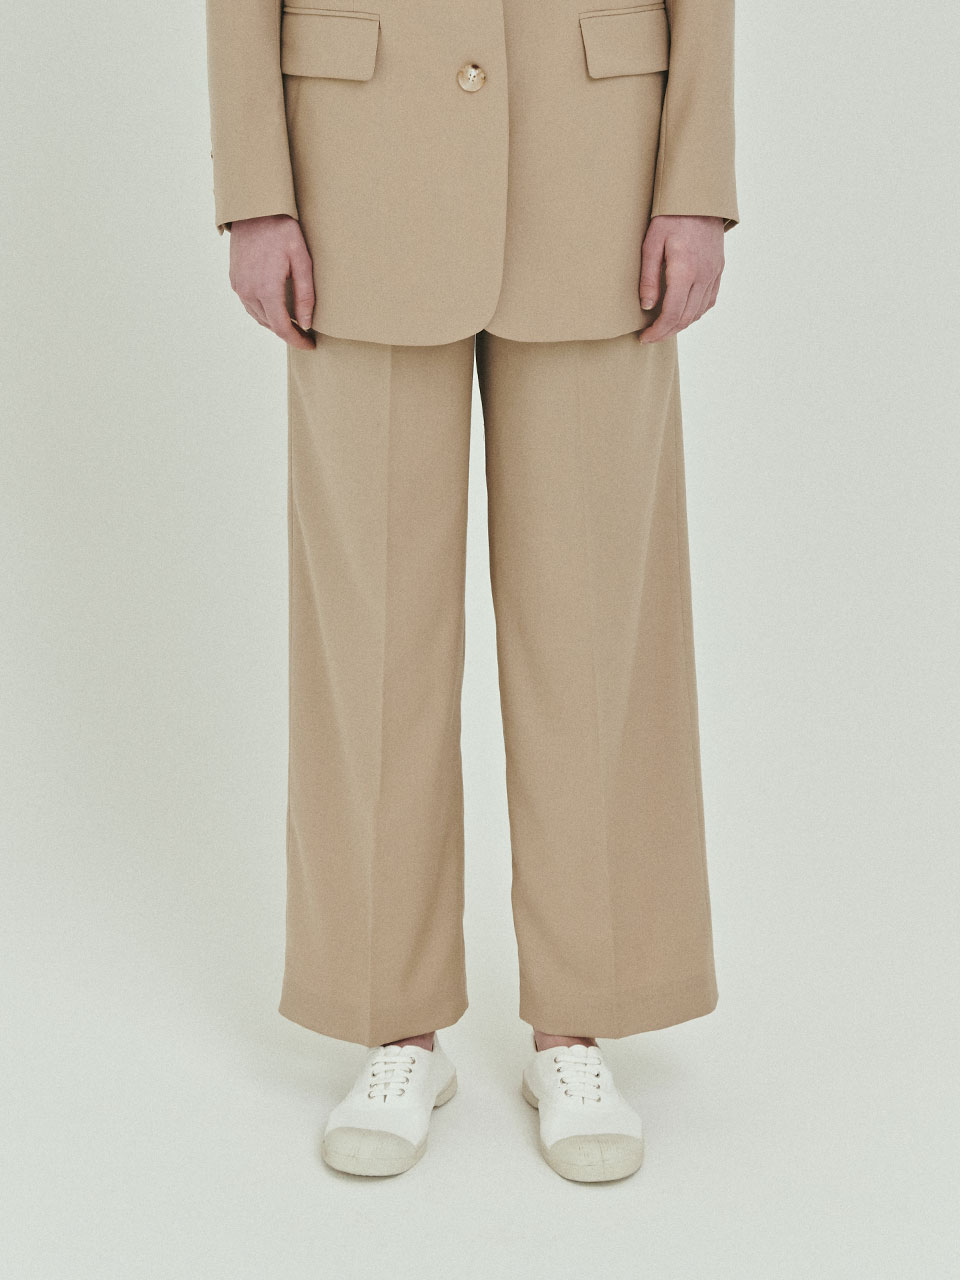 BENSIMON 3 TUCK SET UP WIDE PANTS - BEIGE